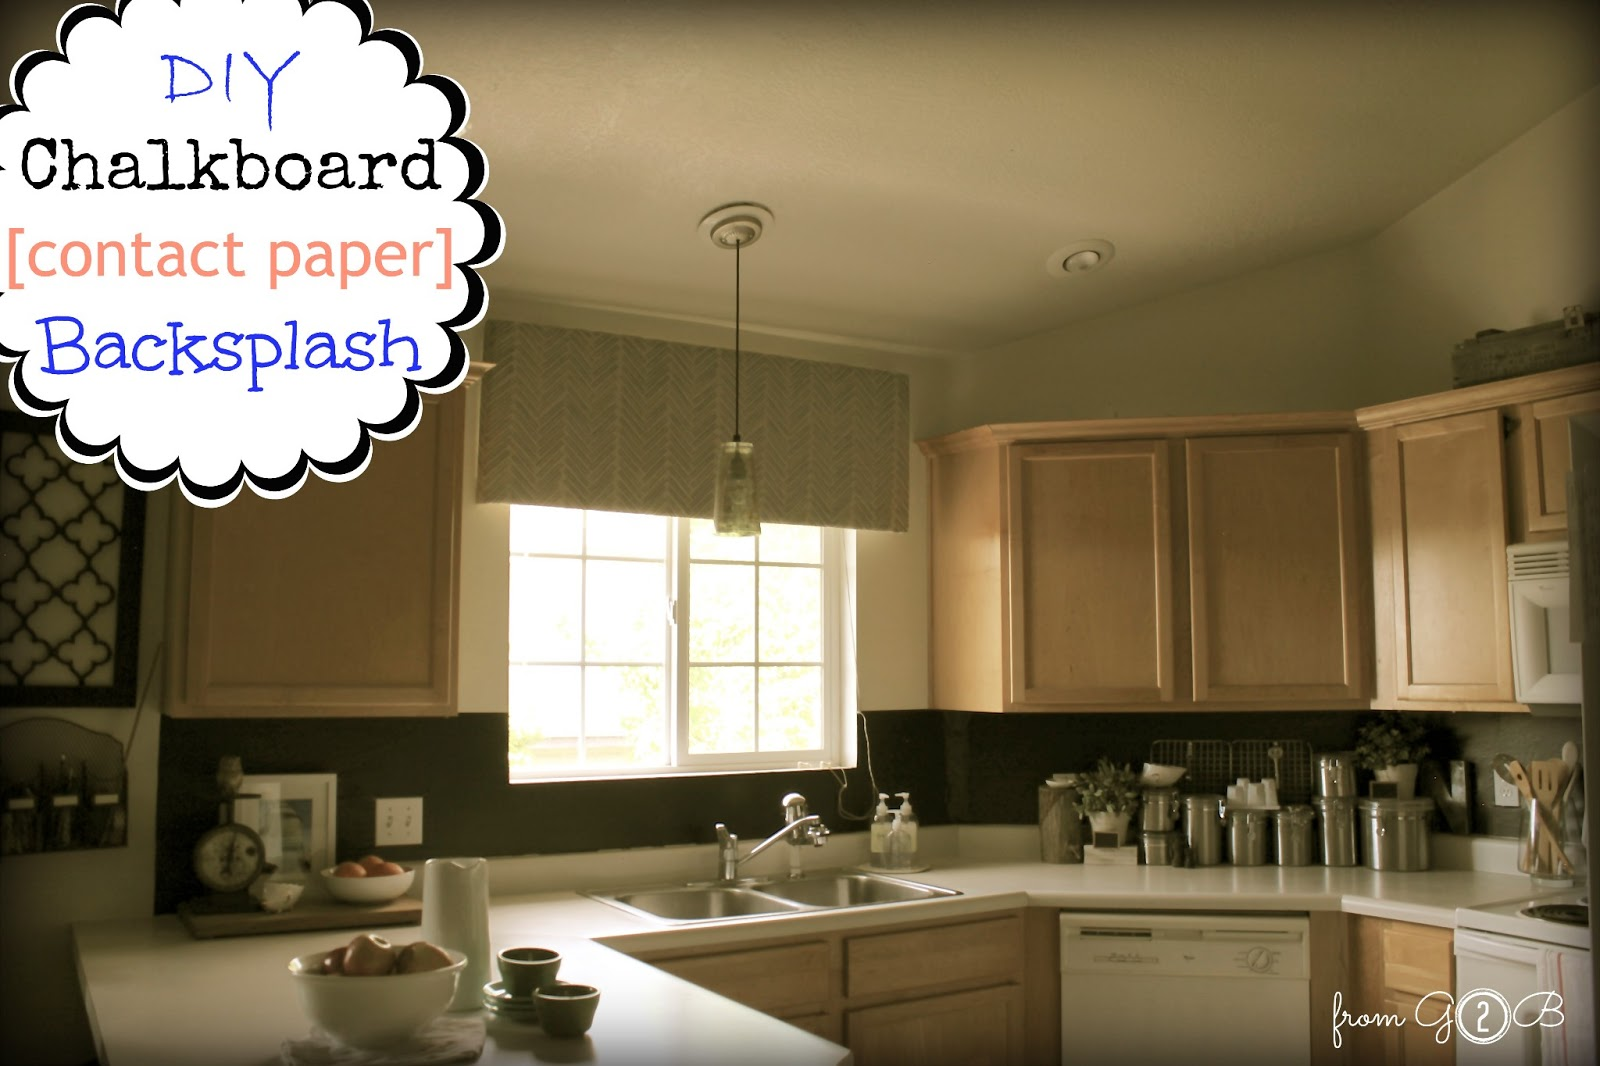 DIY Chalkboard 《Contact Paper》 Backsplash ➹